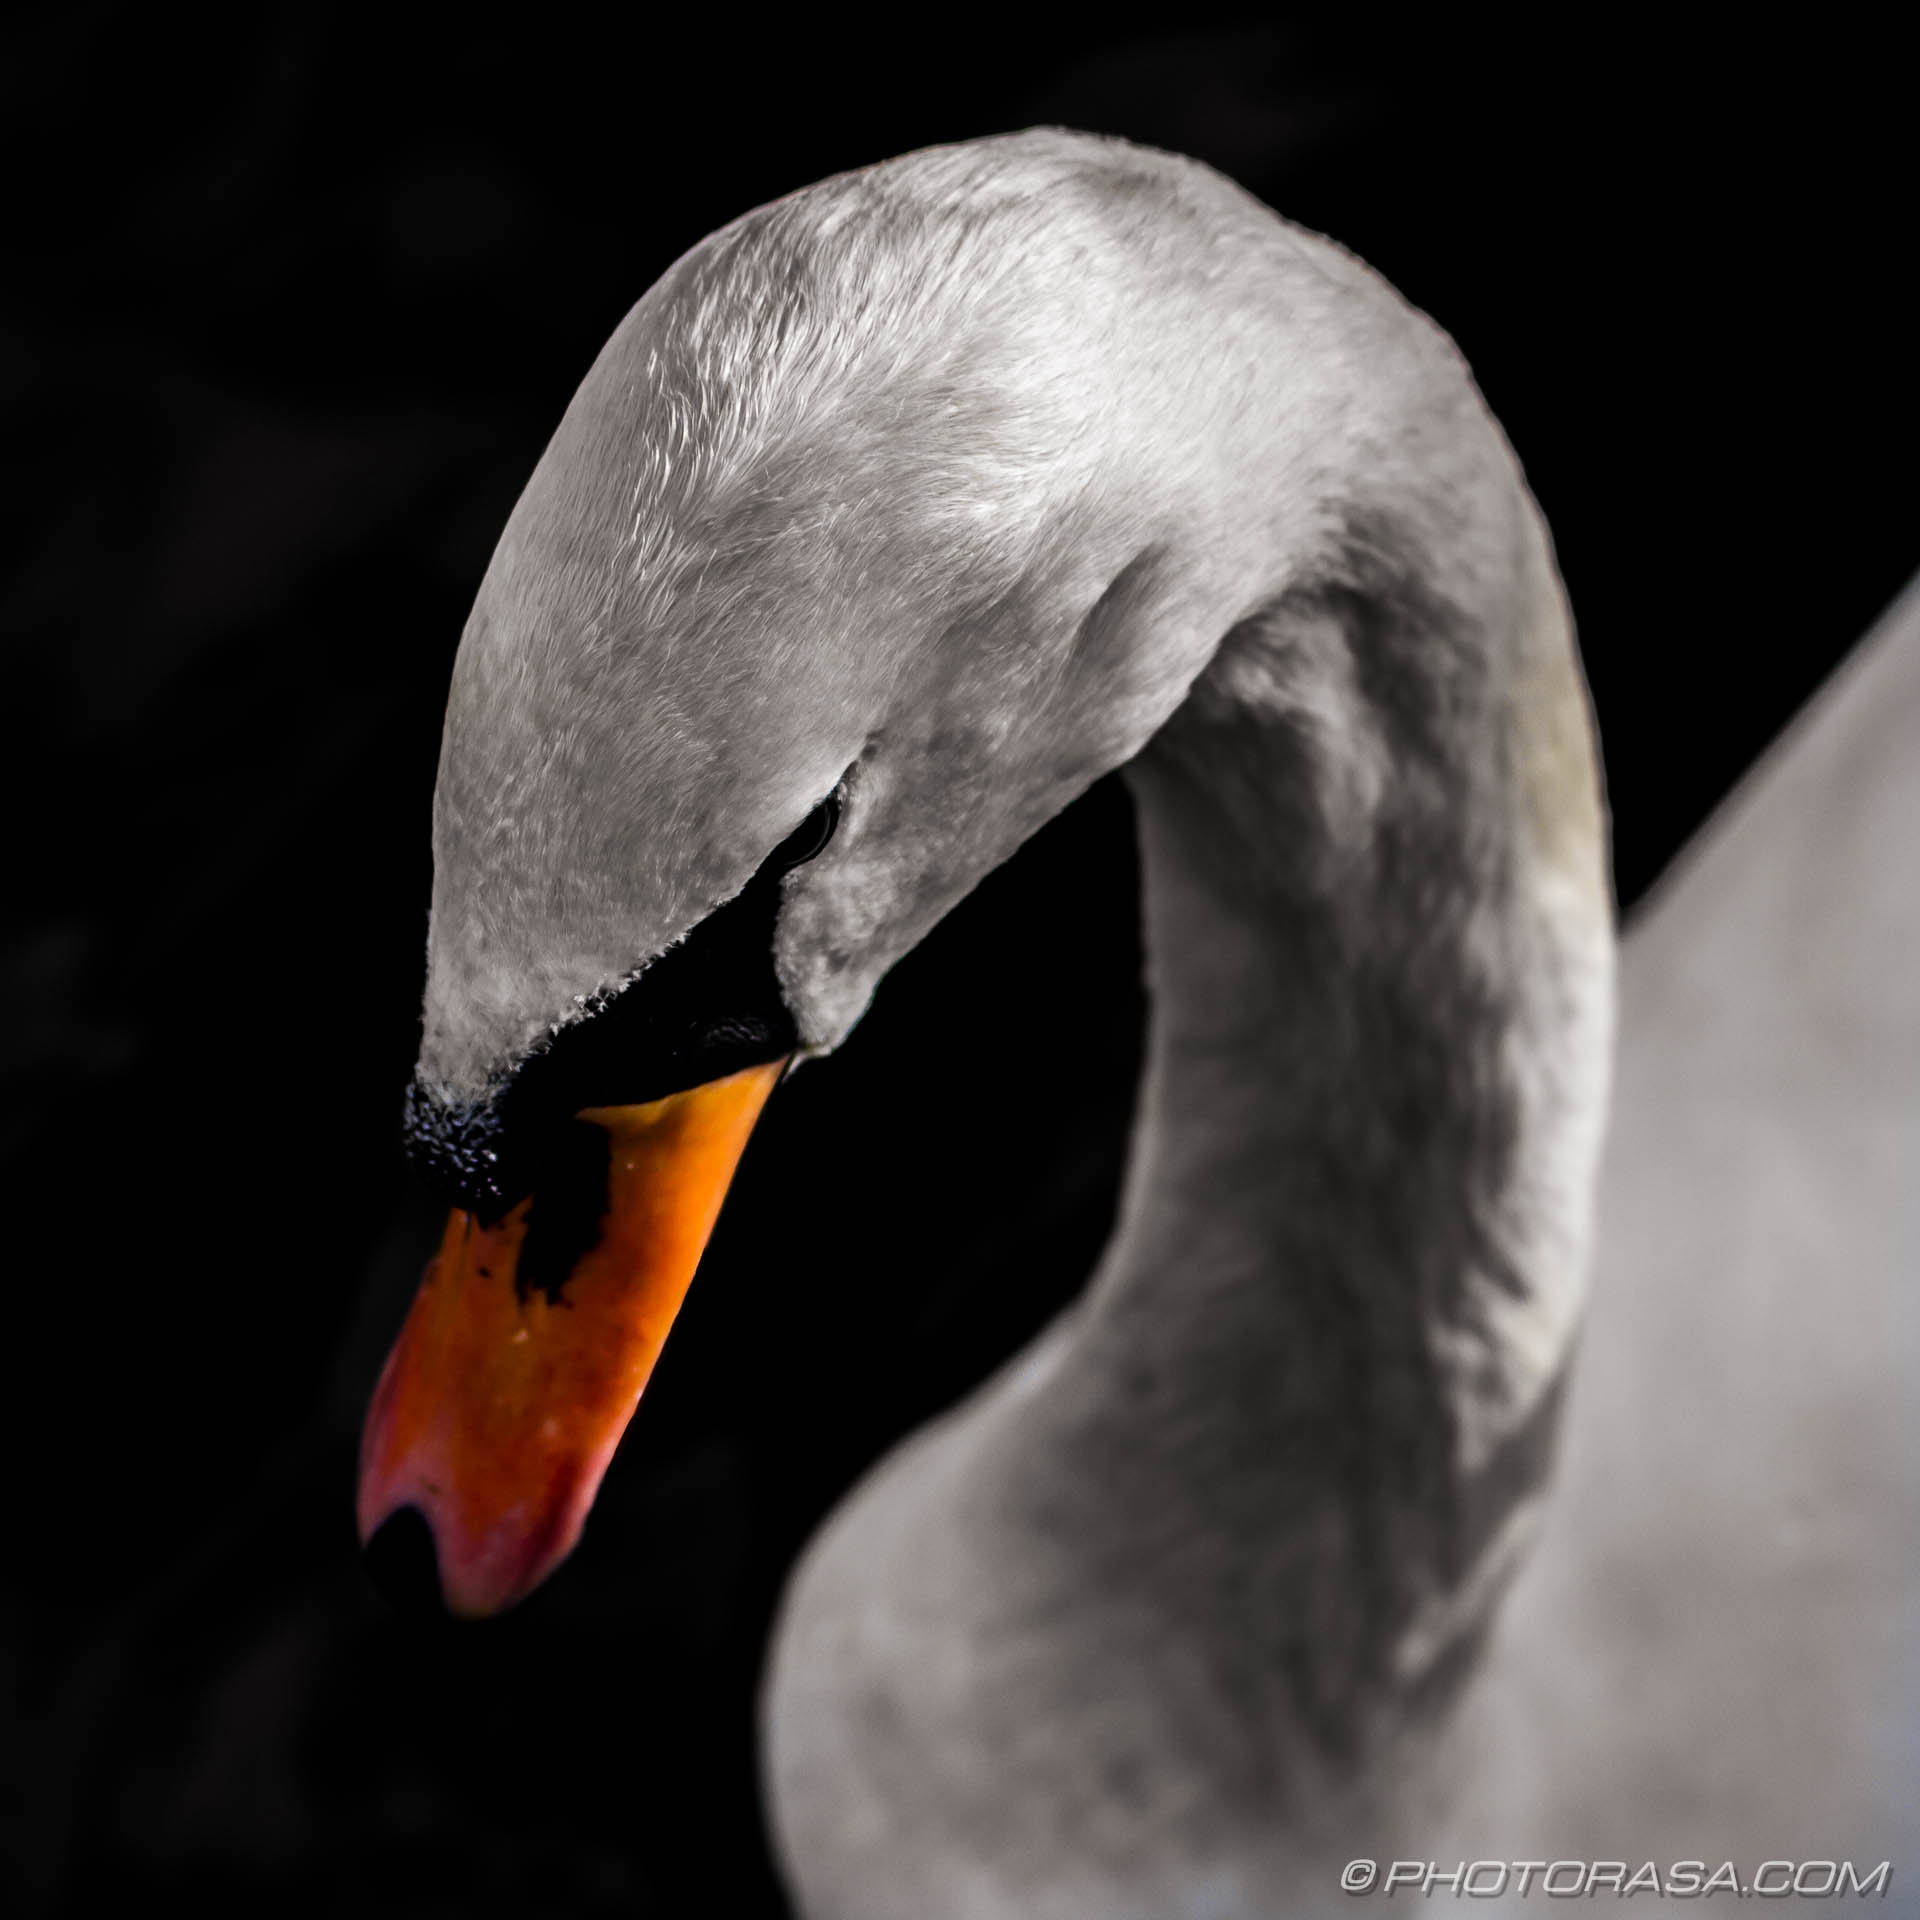 http://photorasa.com/animals/birds/art-swans/attachment/swan-head-from-above/